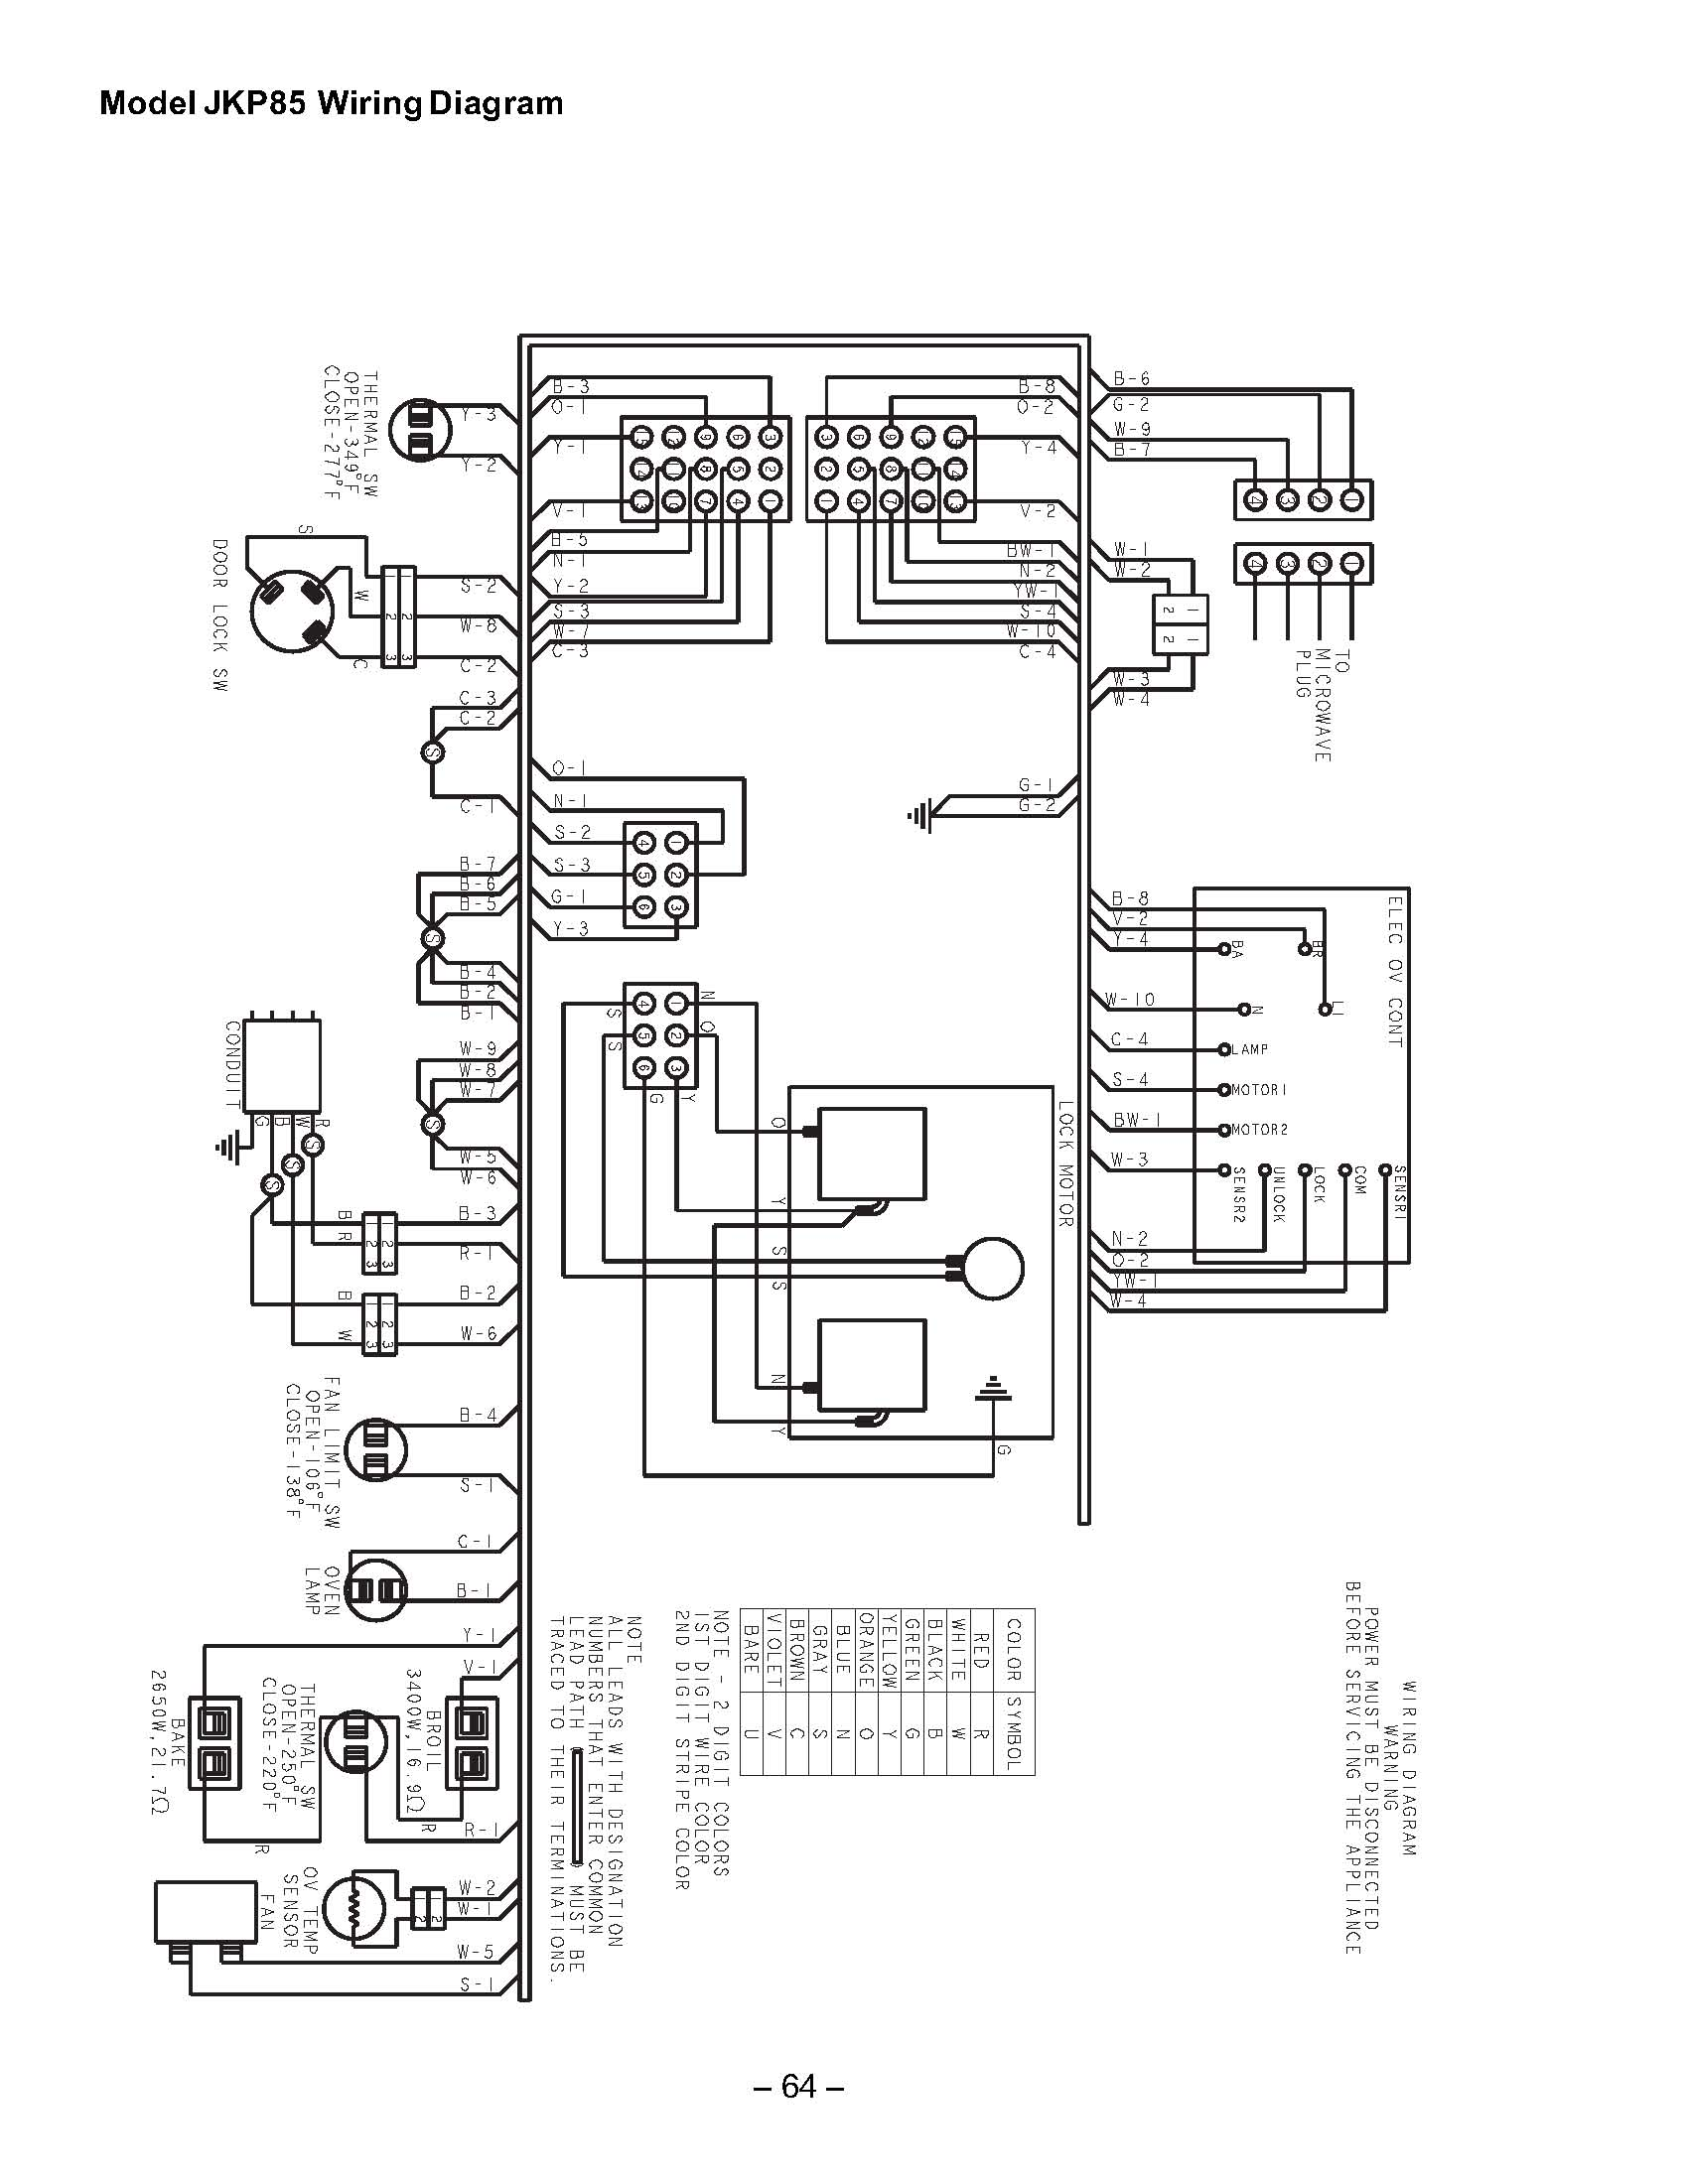 2011 04 22_120234_c_wiring_diagra__jkp90sm2ss_wall_oven?quality\\\\\\\\\\\\\\\=80\\\\\\\\\\\\\\\&strip\\\\\\\\\\\\\\\=all switch oven wiring diagram model 363 9378880 wiring diagrams  at edmiracle.co